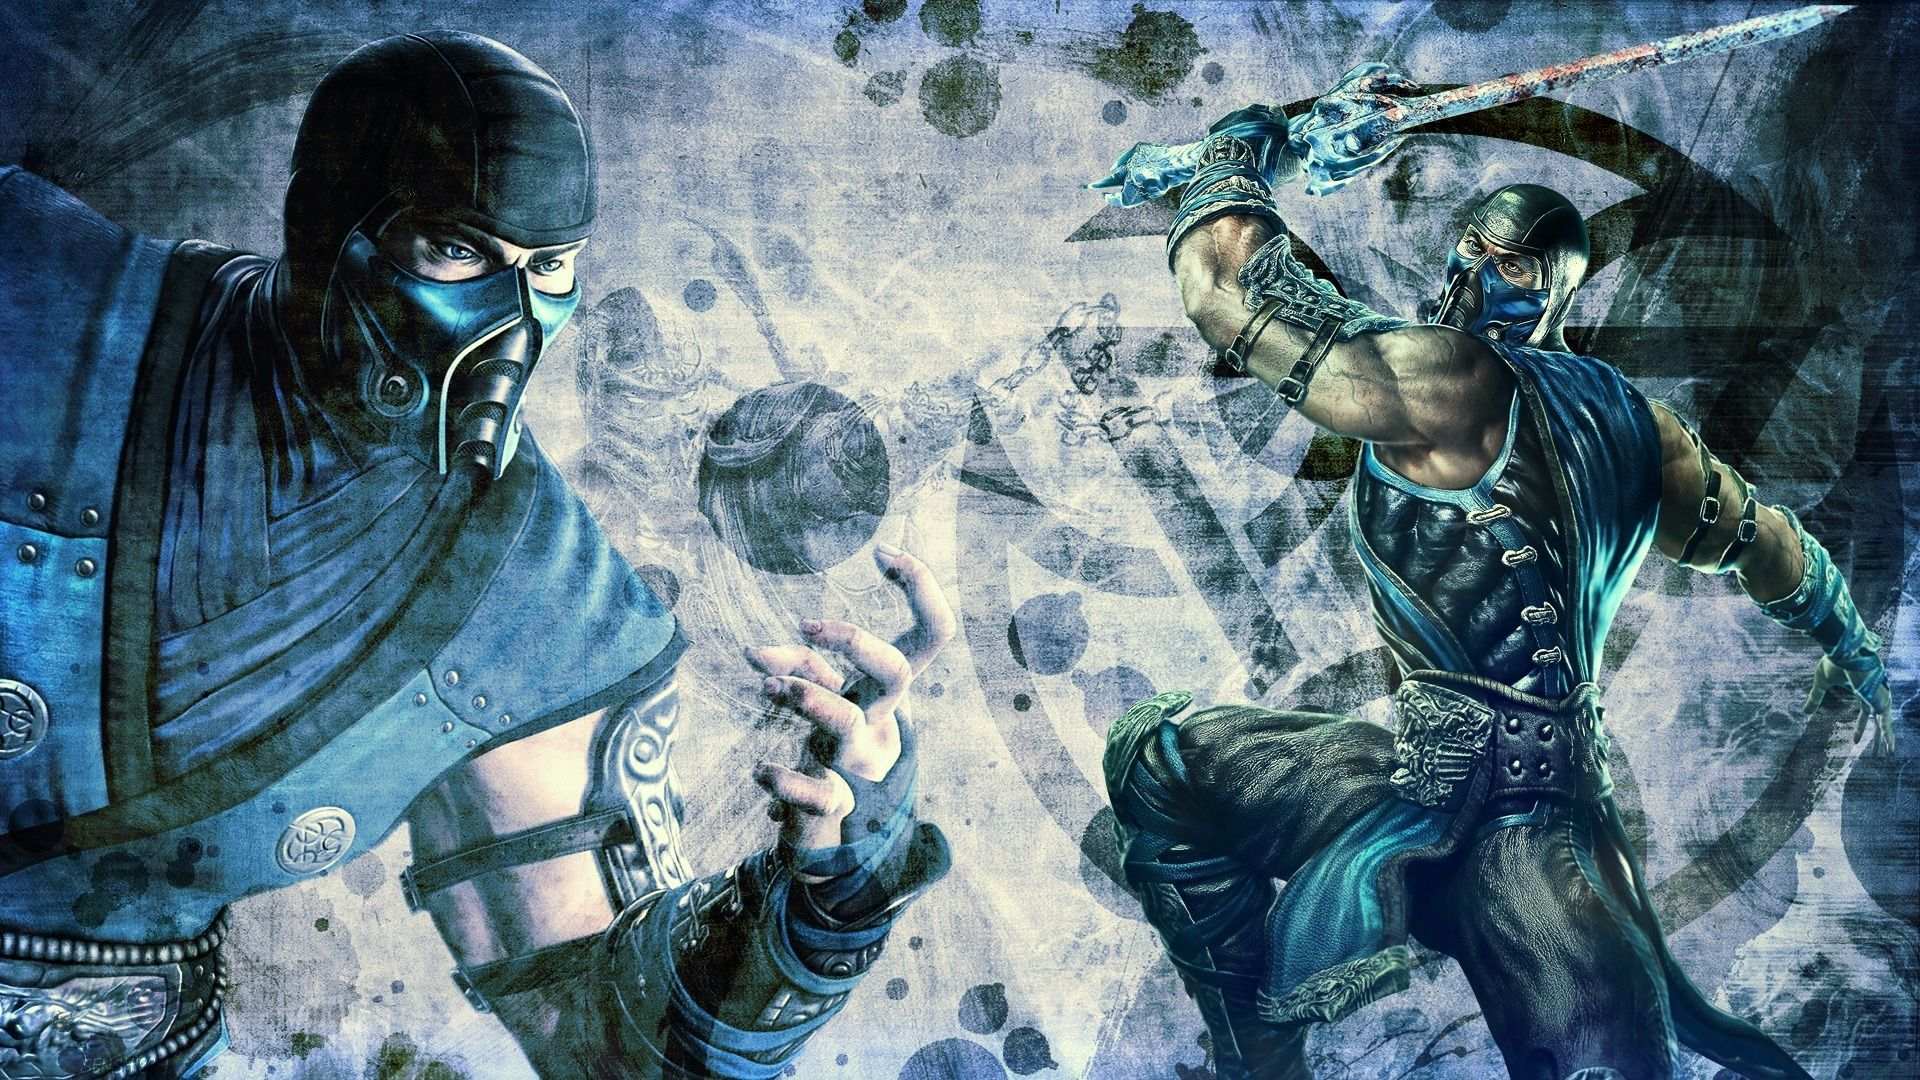 Mortal Kombat wallpaper Sub-Zero